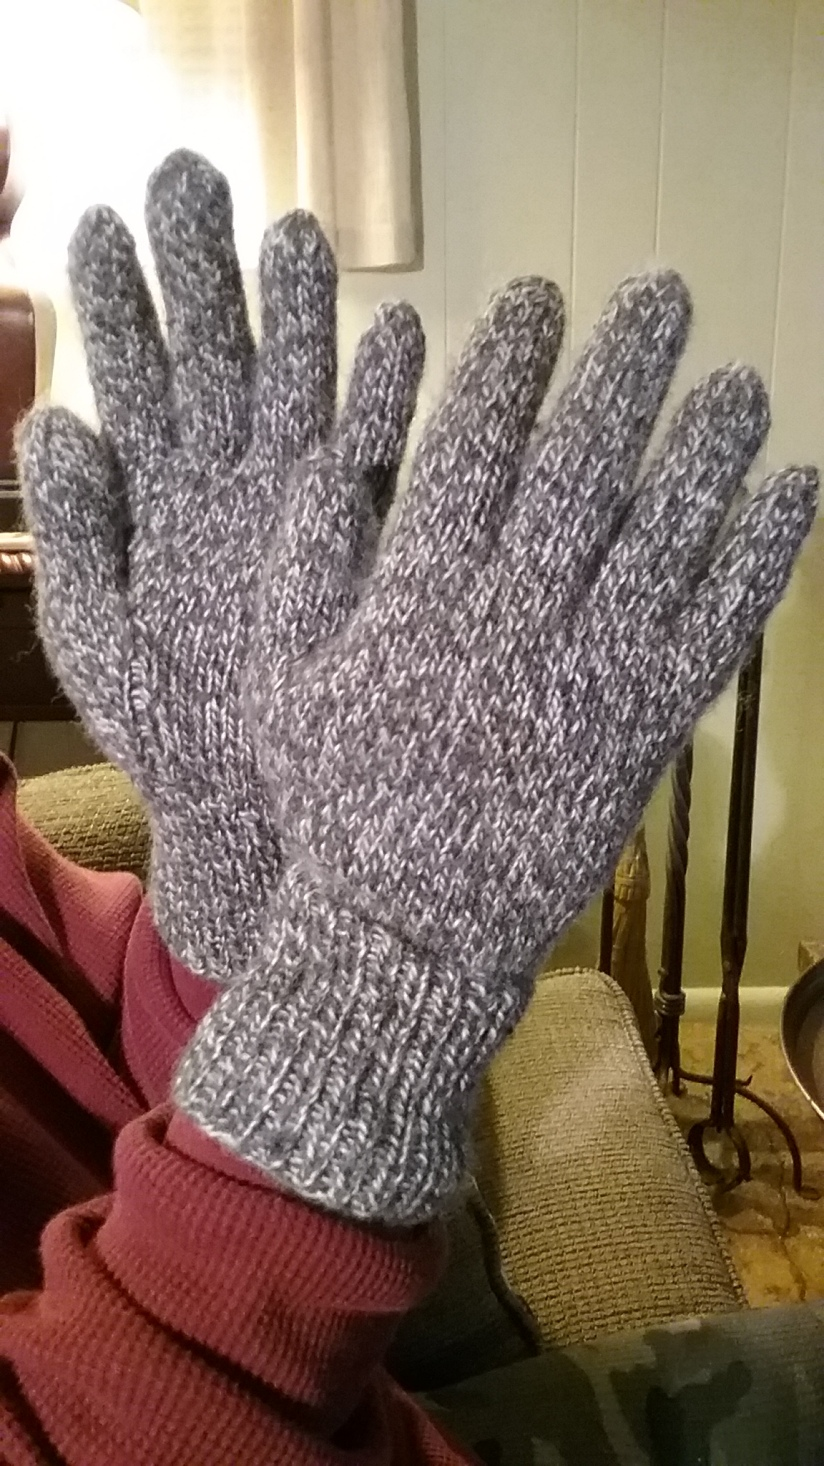 Knitting Gloves, and a Cap- Works in Progress Completed!